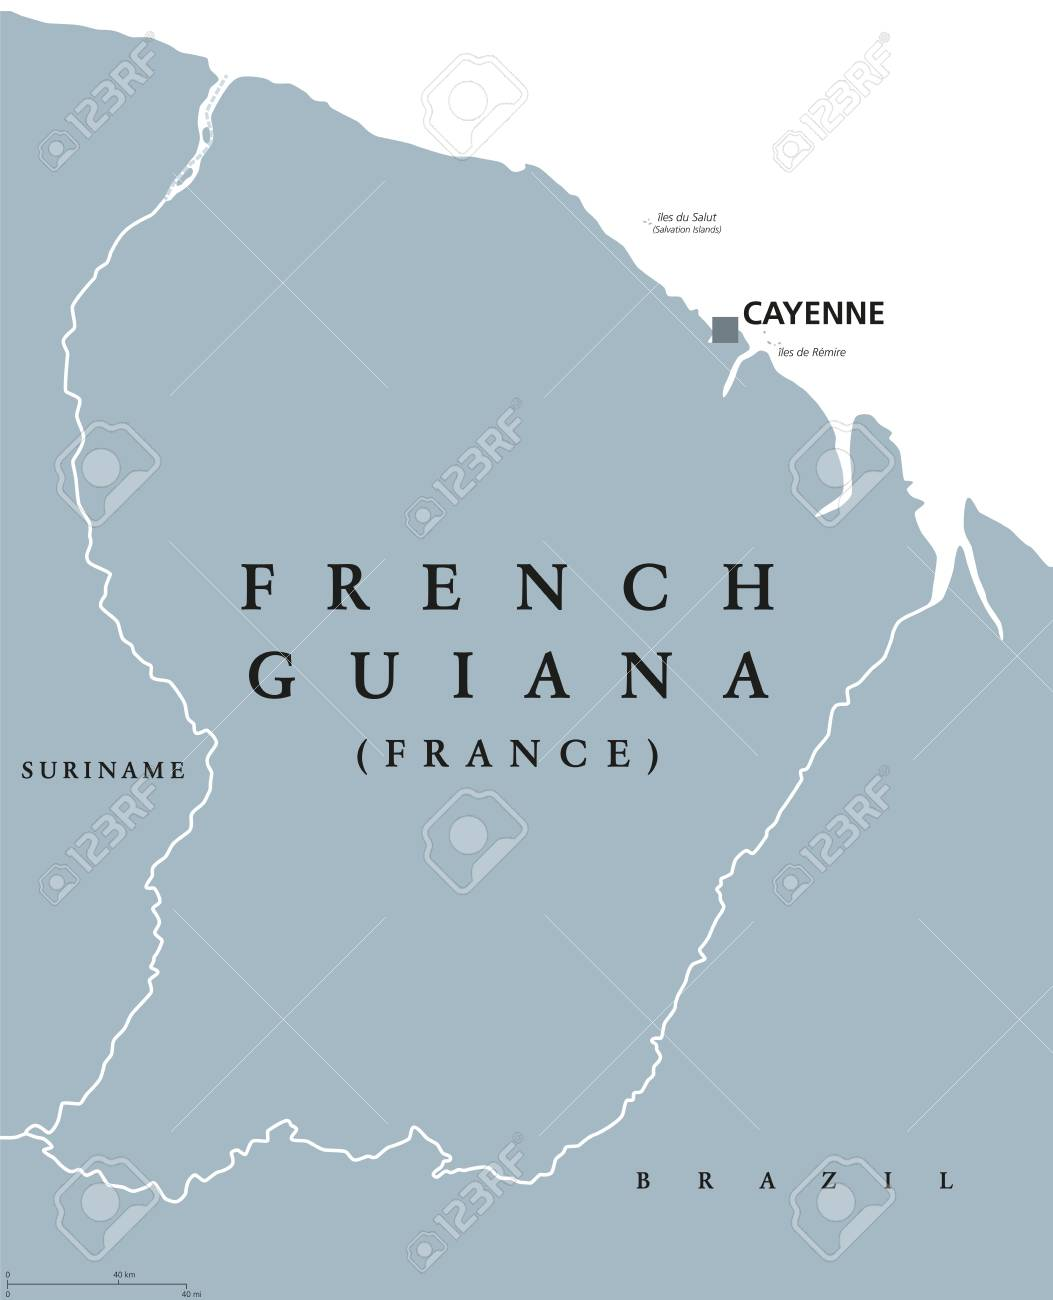 Capital Of France Map.French Guiana Political Map With Capital Cayenne And Borders